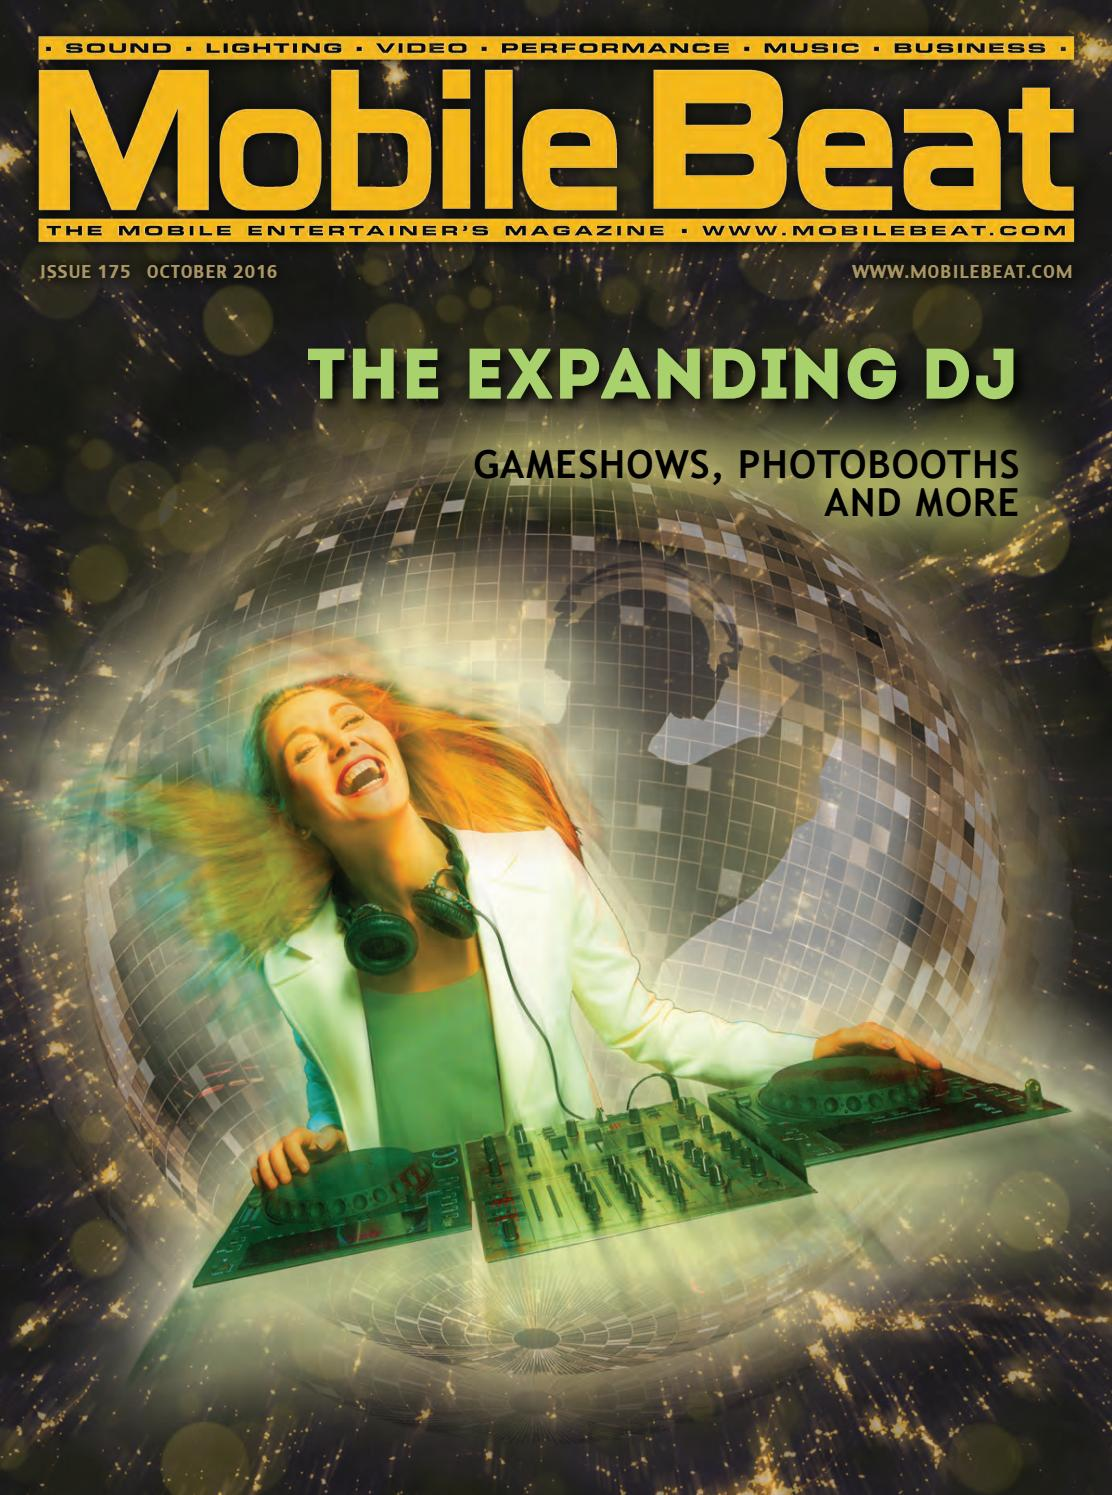 Issue 175 - October 2016 - The Expanding DJ